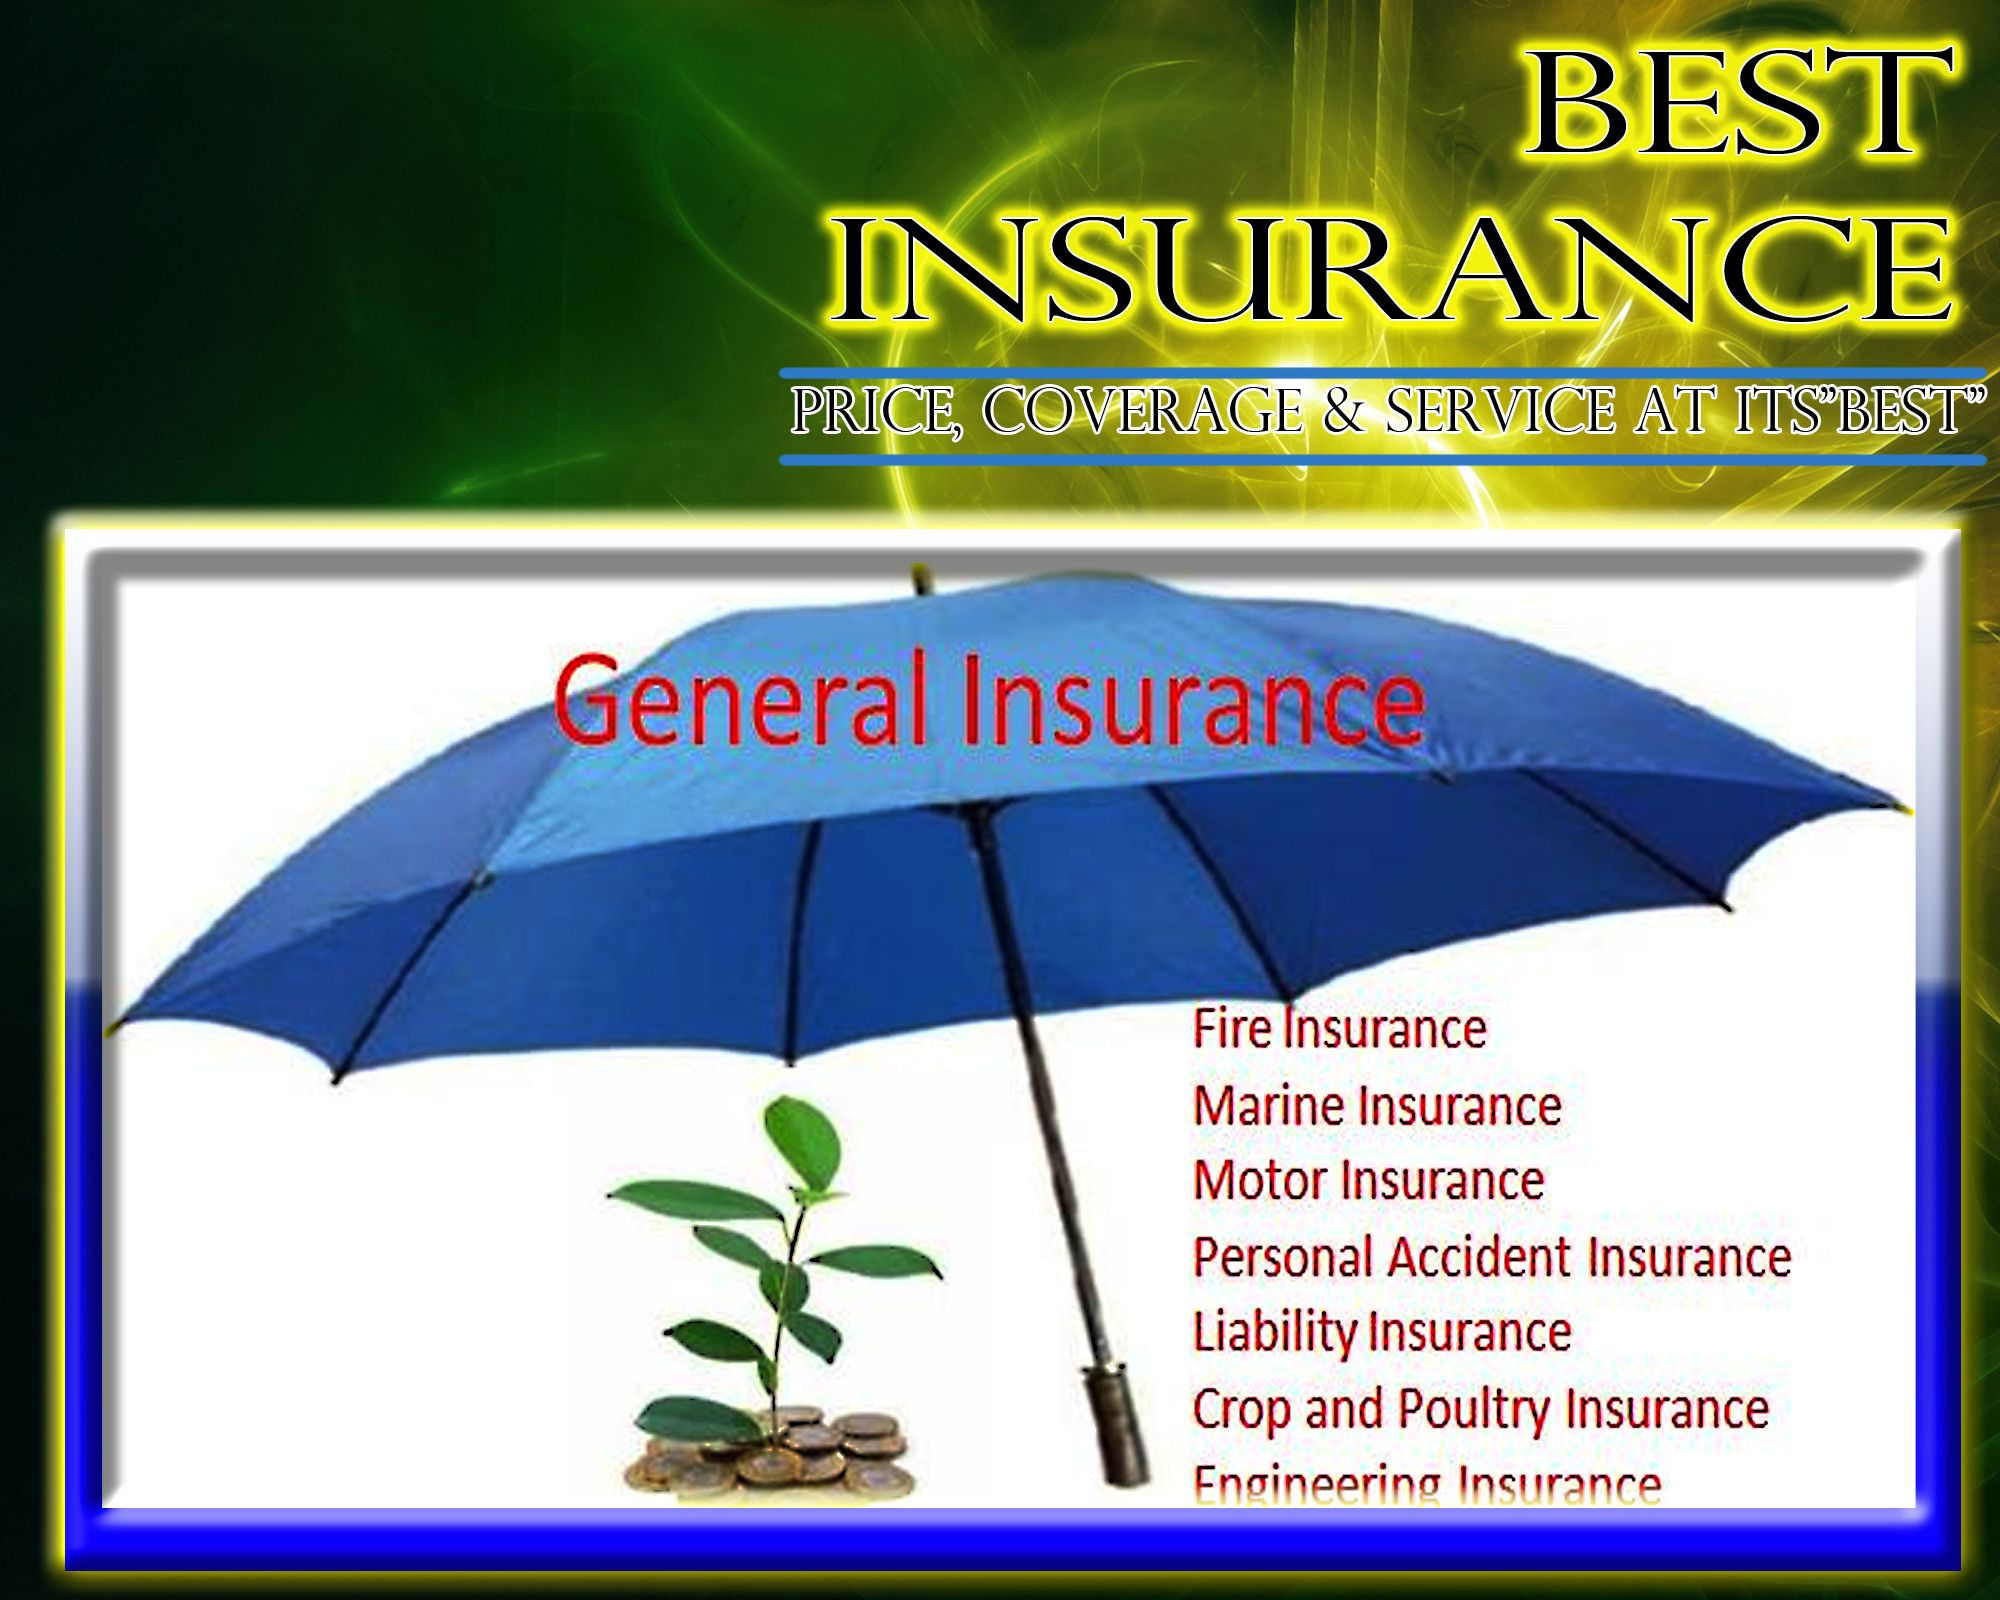 The General Auto Quote Captivating Autoinsuranceft.lauderdale General Insurance  General Insurance . Inspiration Design